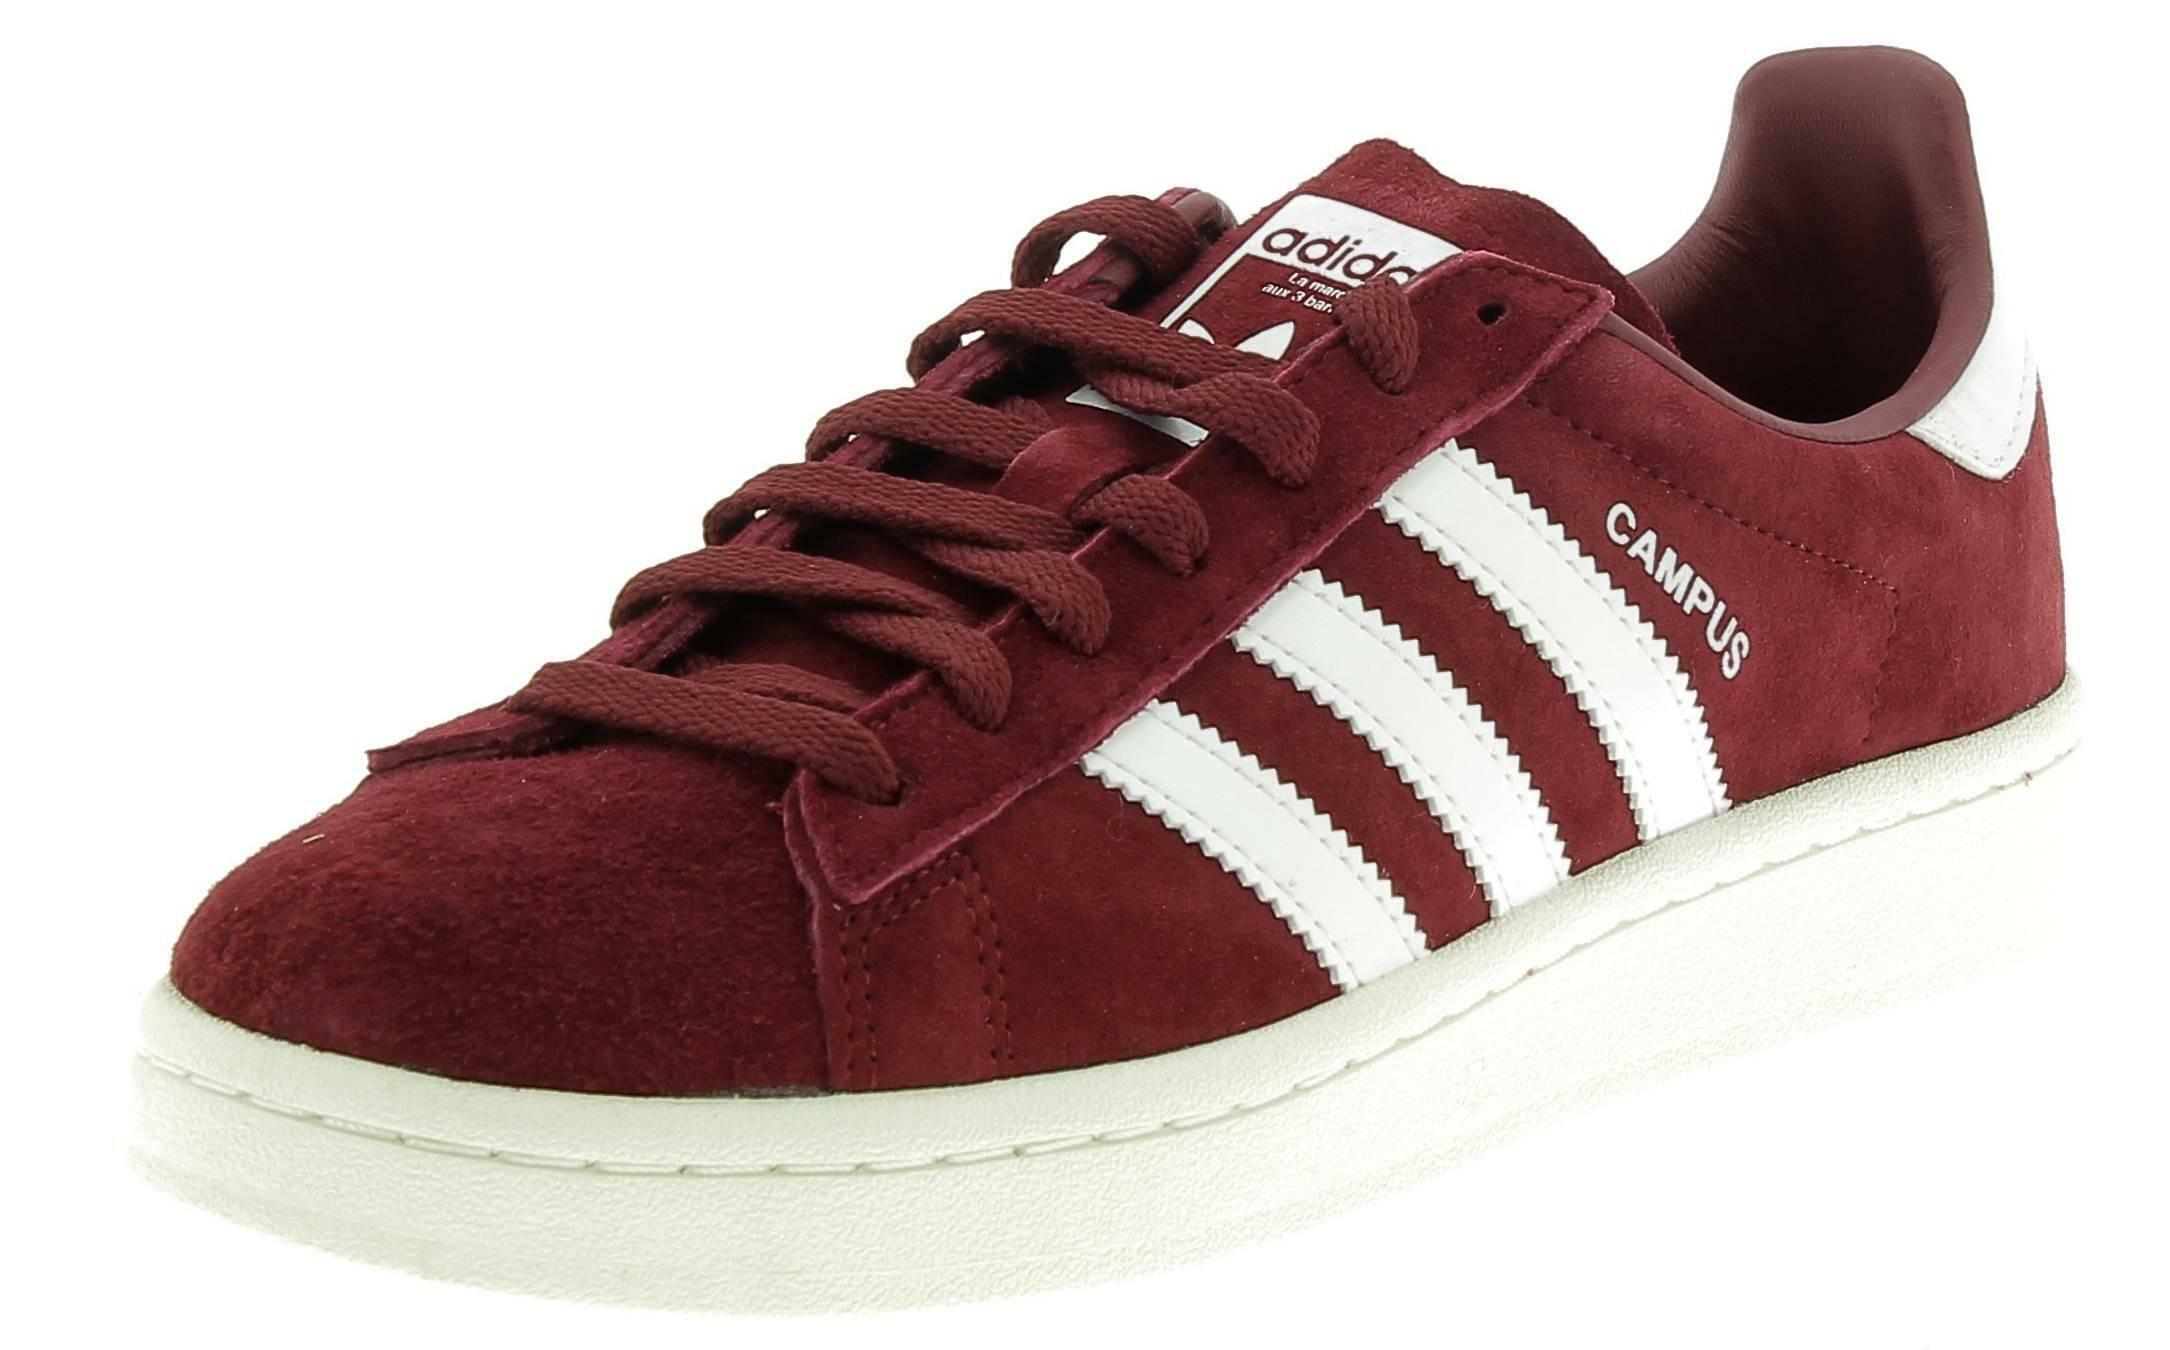 more photos f66eb 67c82 adidas campus bordeaux - uttamart.com